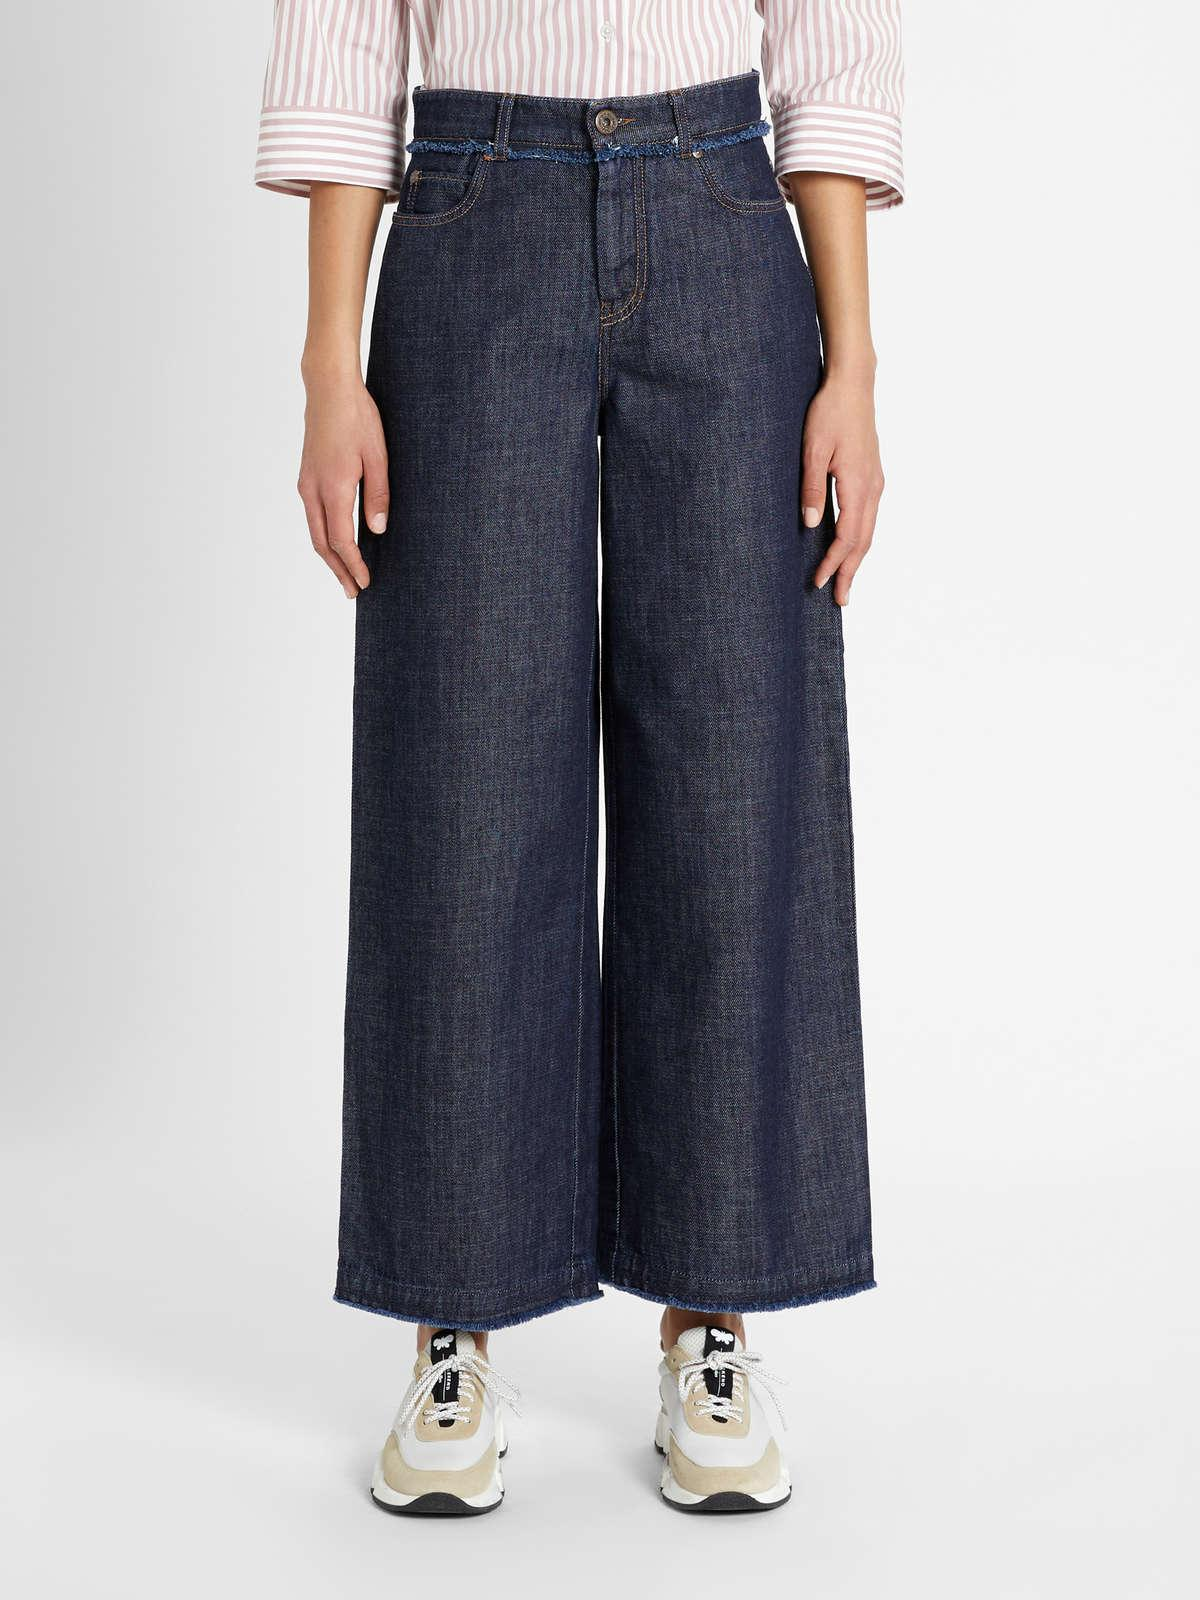 Womens Max Mara Trousers And Jeans | Cotton Denim Trousers Navy